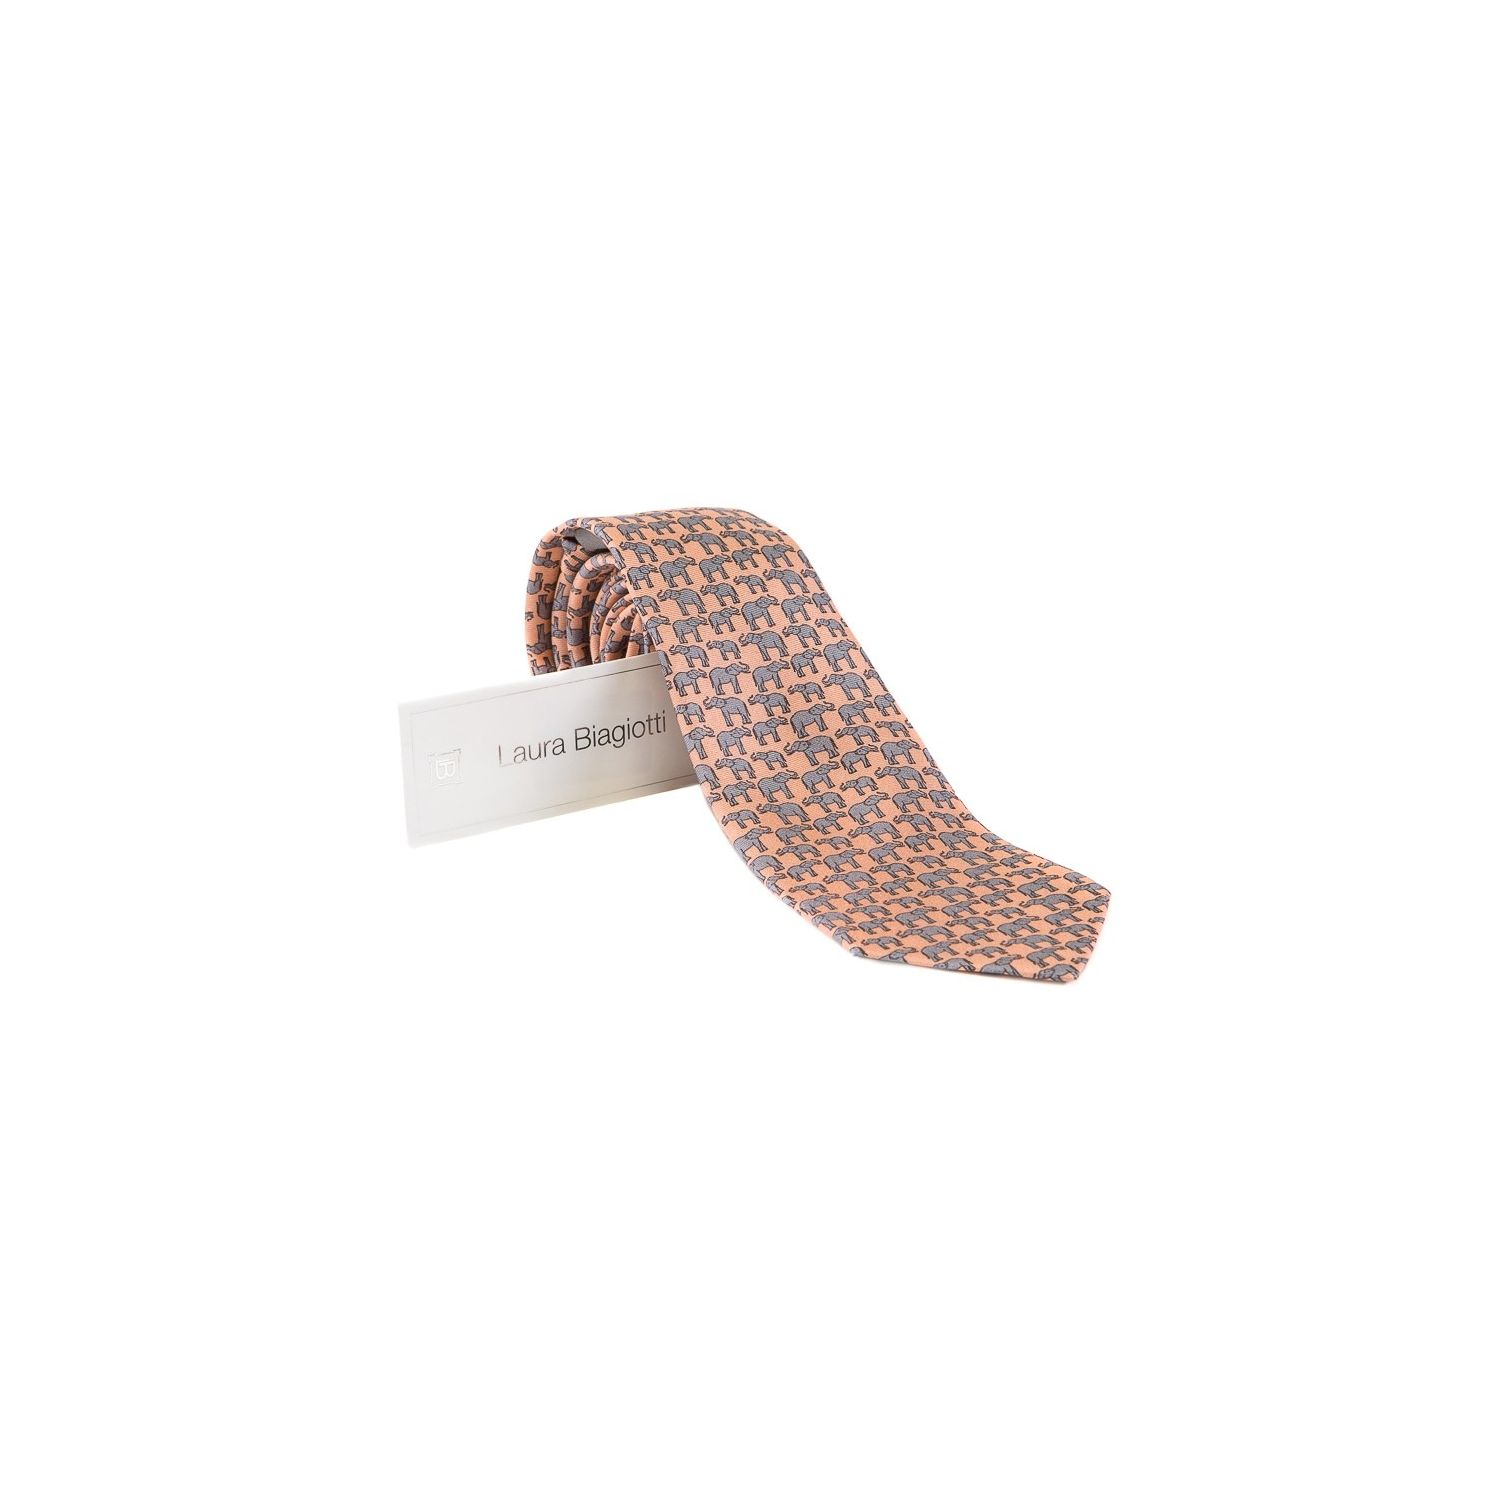 Laura Biagiotti tie out of office salmon